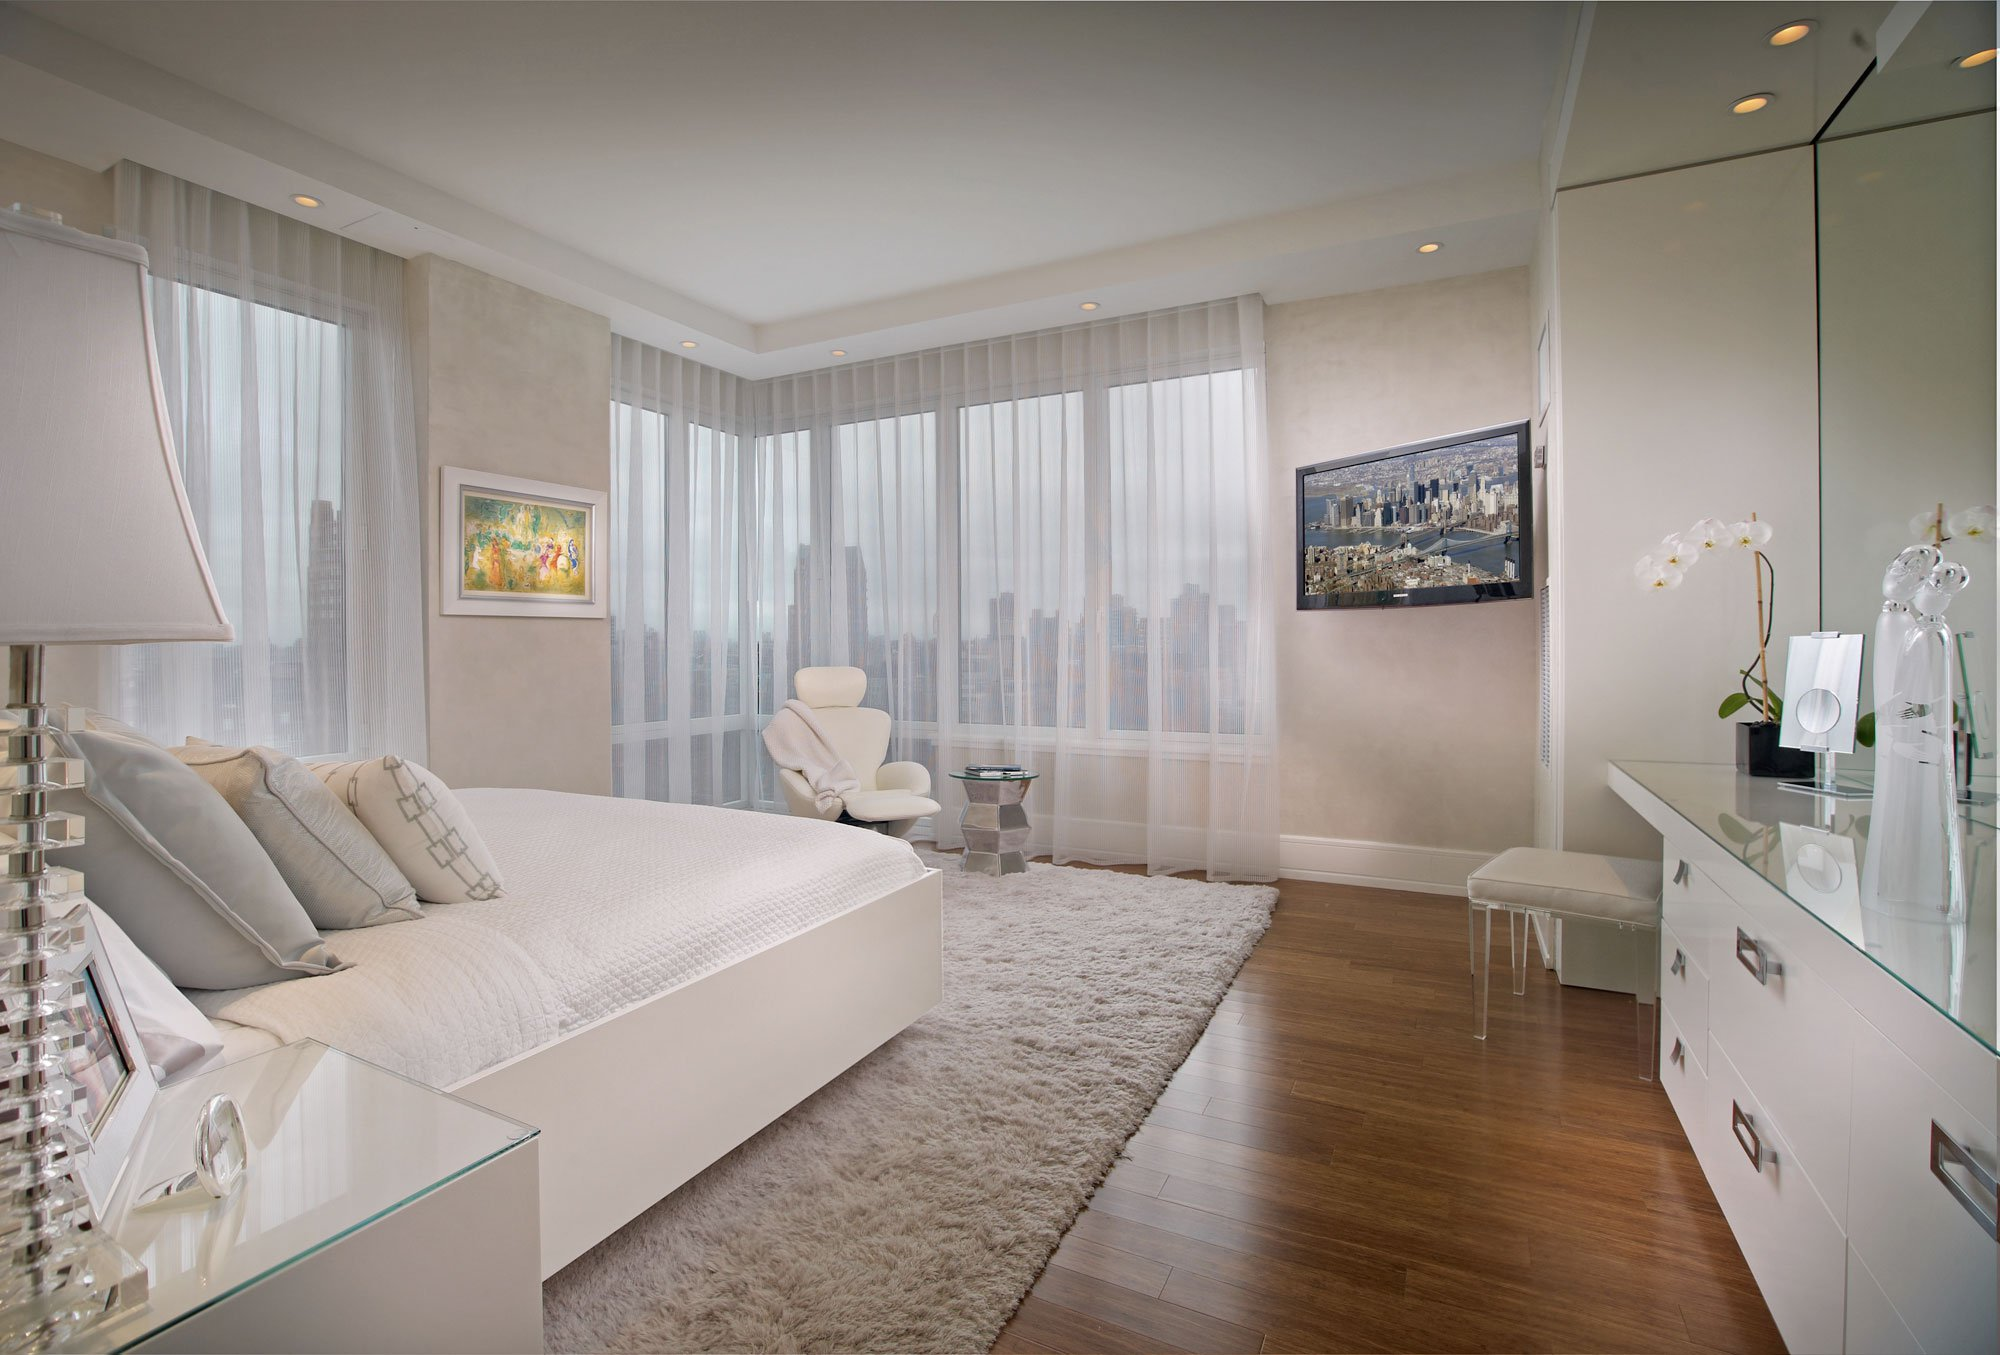 New York Penthouse by Pepe Calderin Design - CAANdesign ...